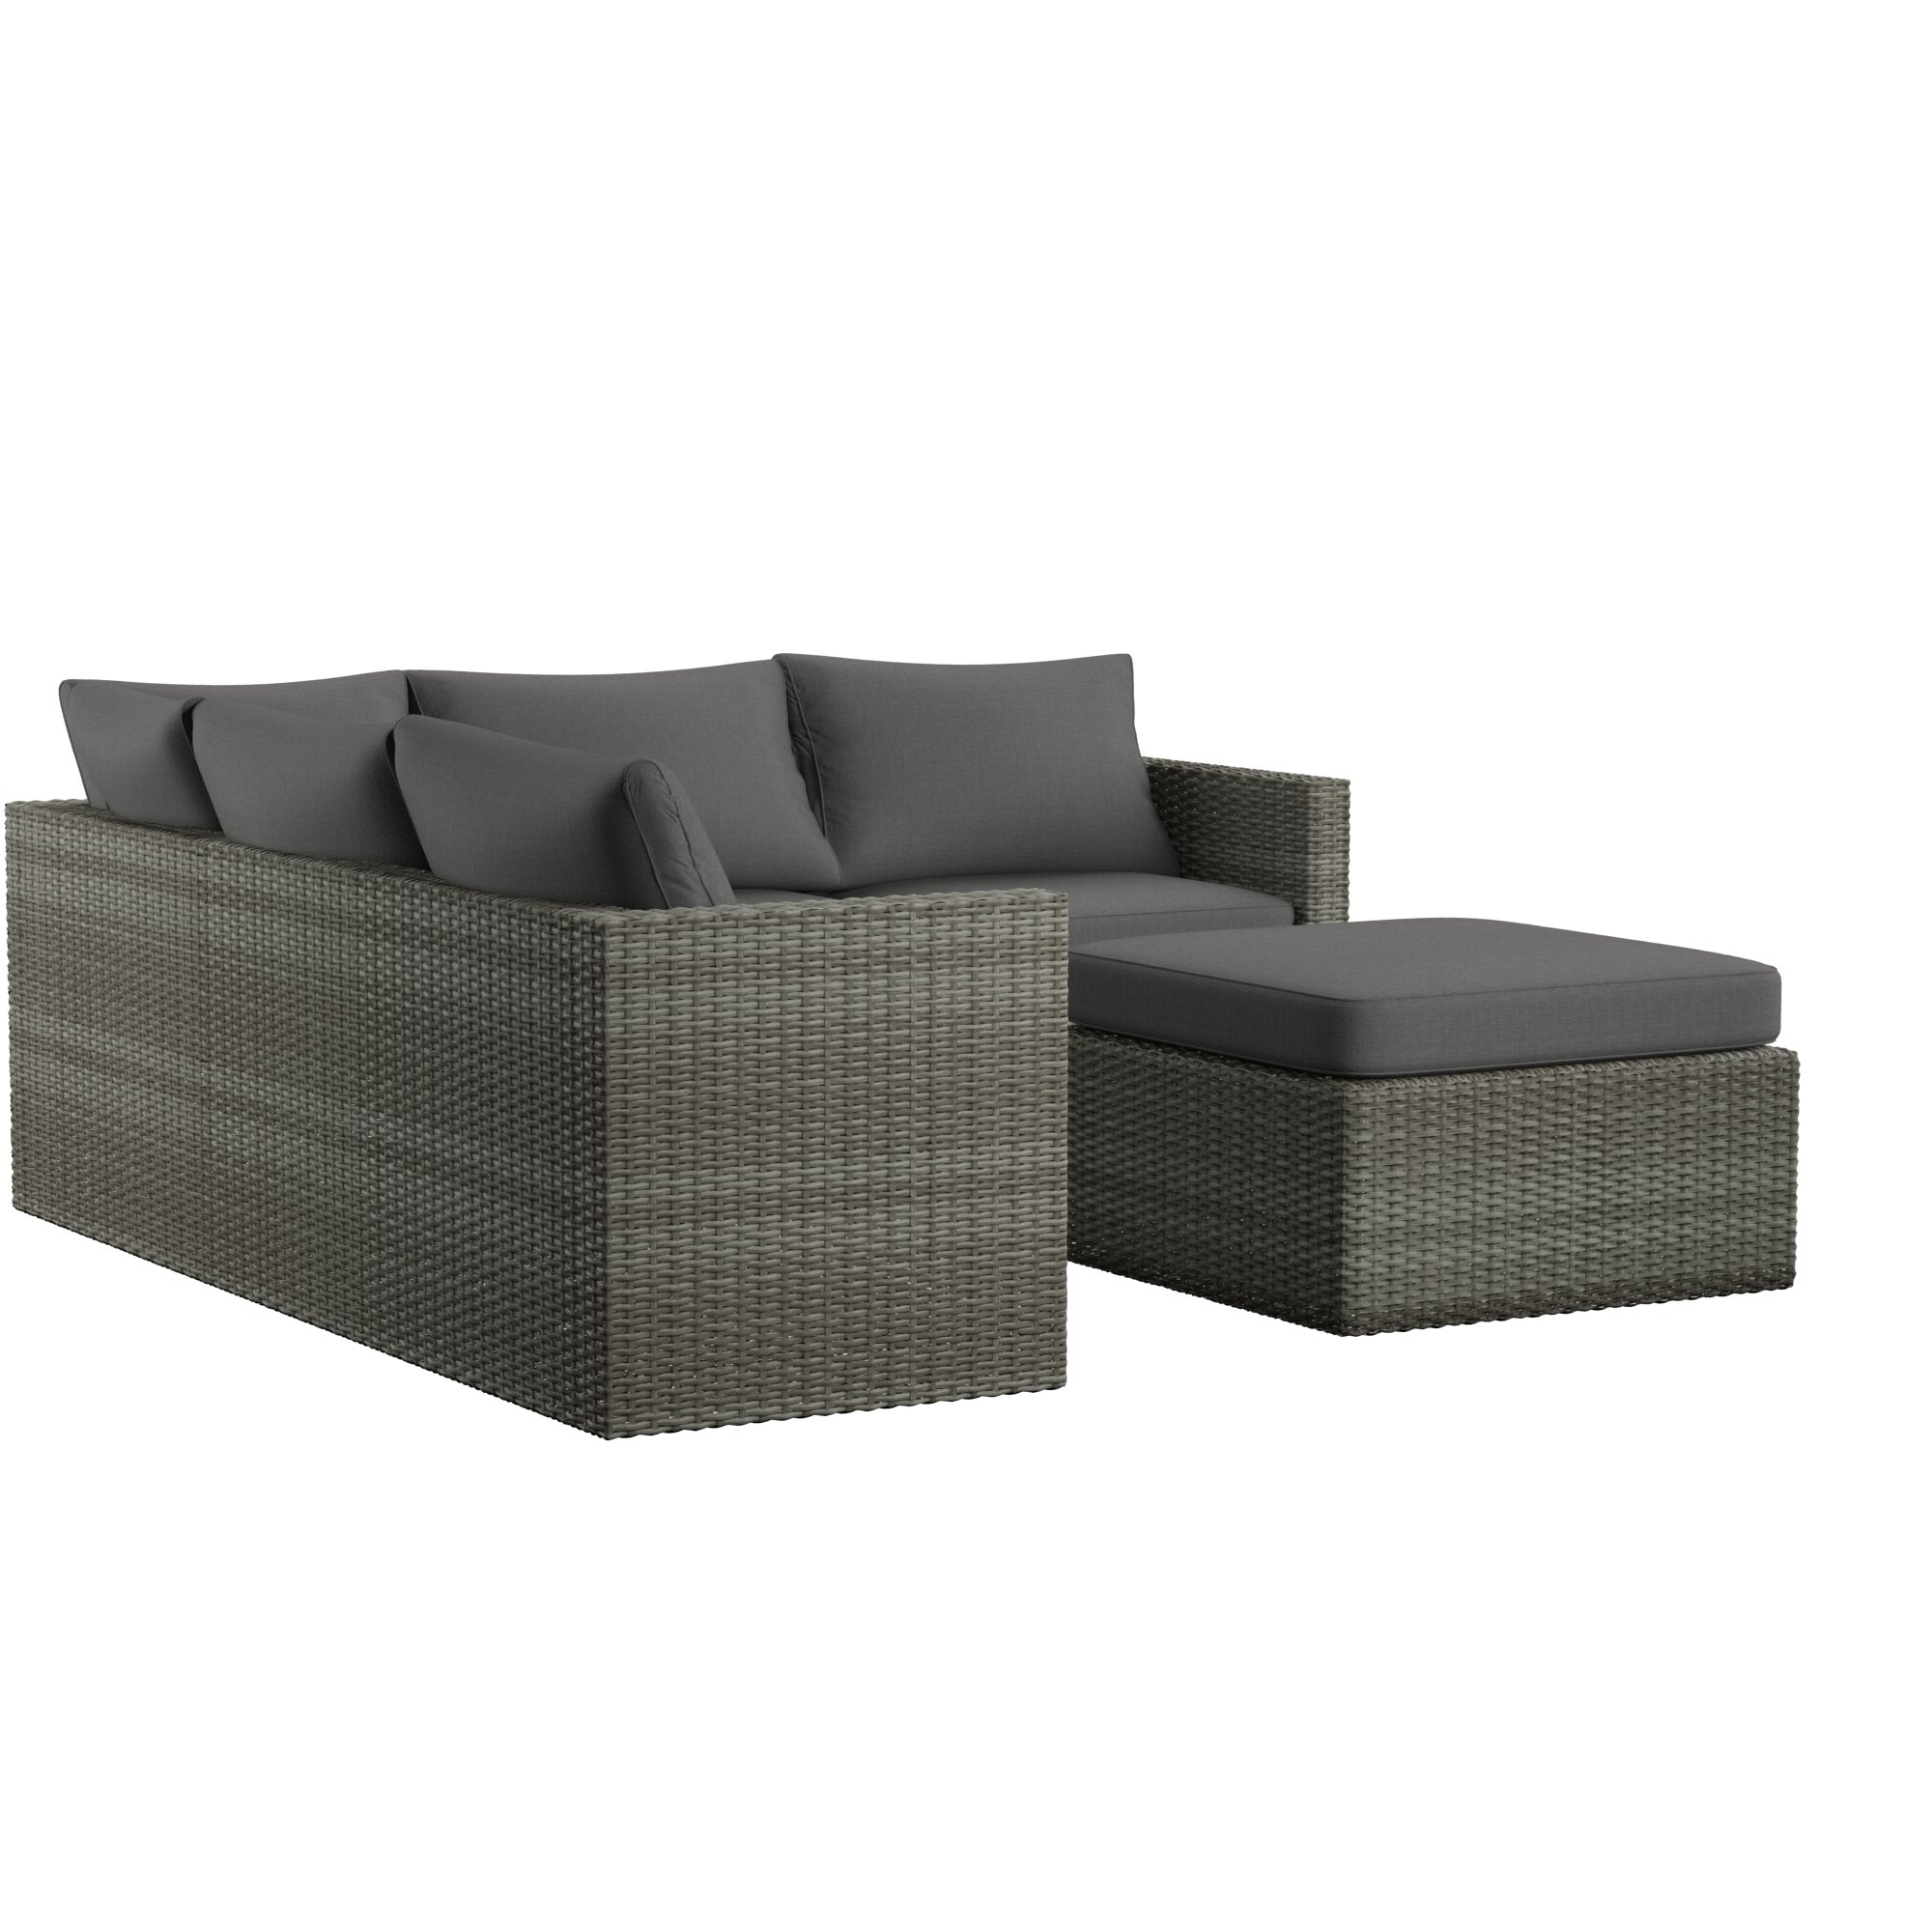 Nolen Patio Sectionals With Cushions Pertaining To Newest Lorentzen Patio Sectional With Cushions (View 10 of 20)